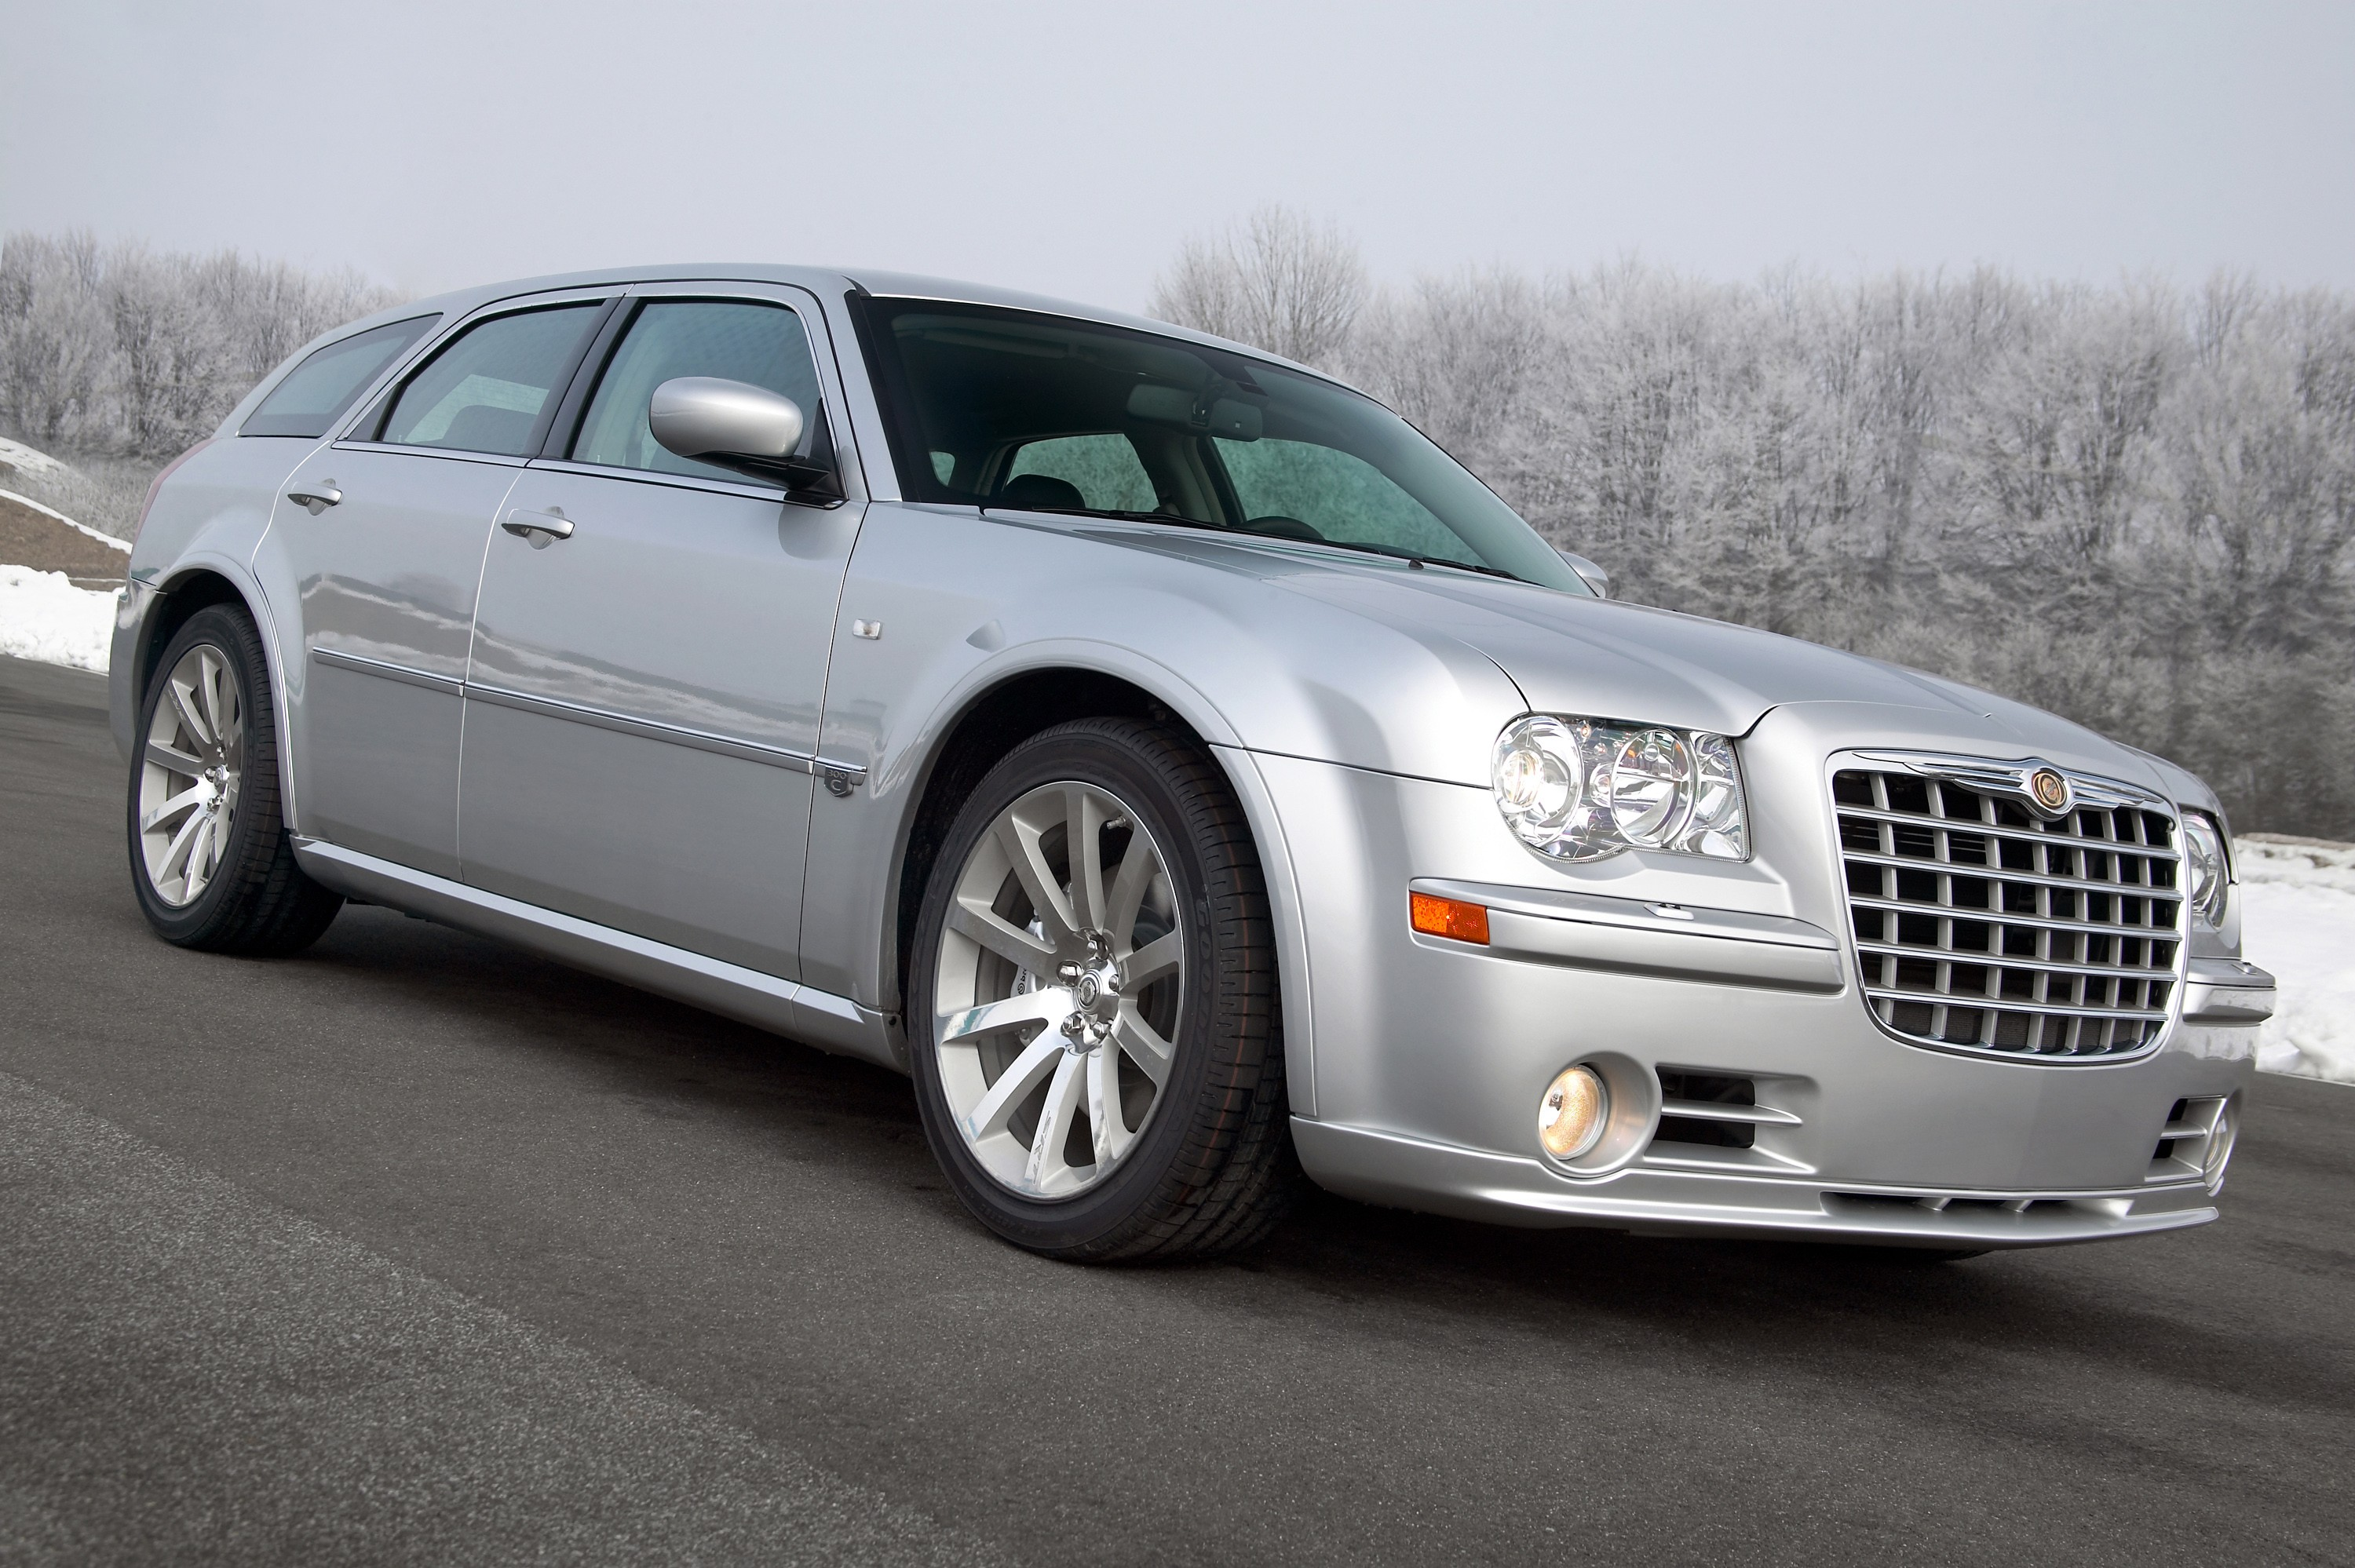 chrysler 300c touring srt8 specs photos 2006 2007 2008 2009 2010 autoevolution. Black Bedroom Furniture Sets. Home Design Ideas